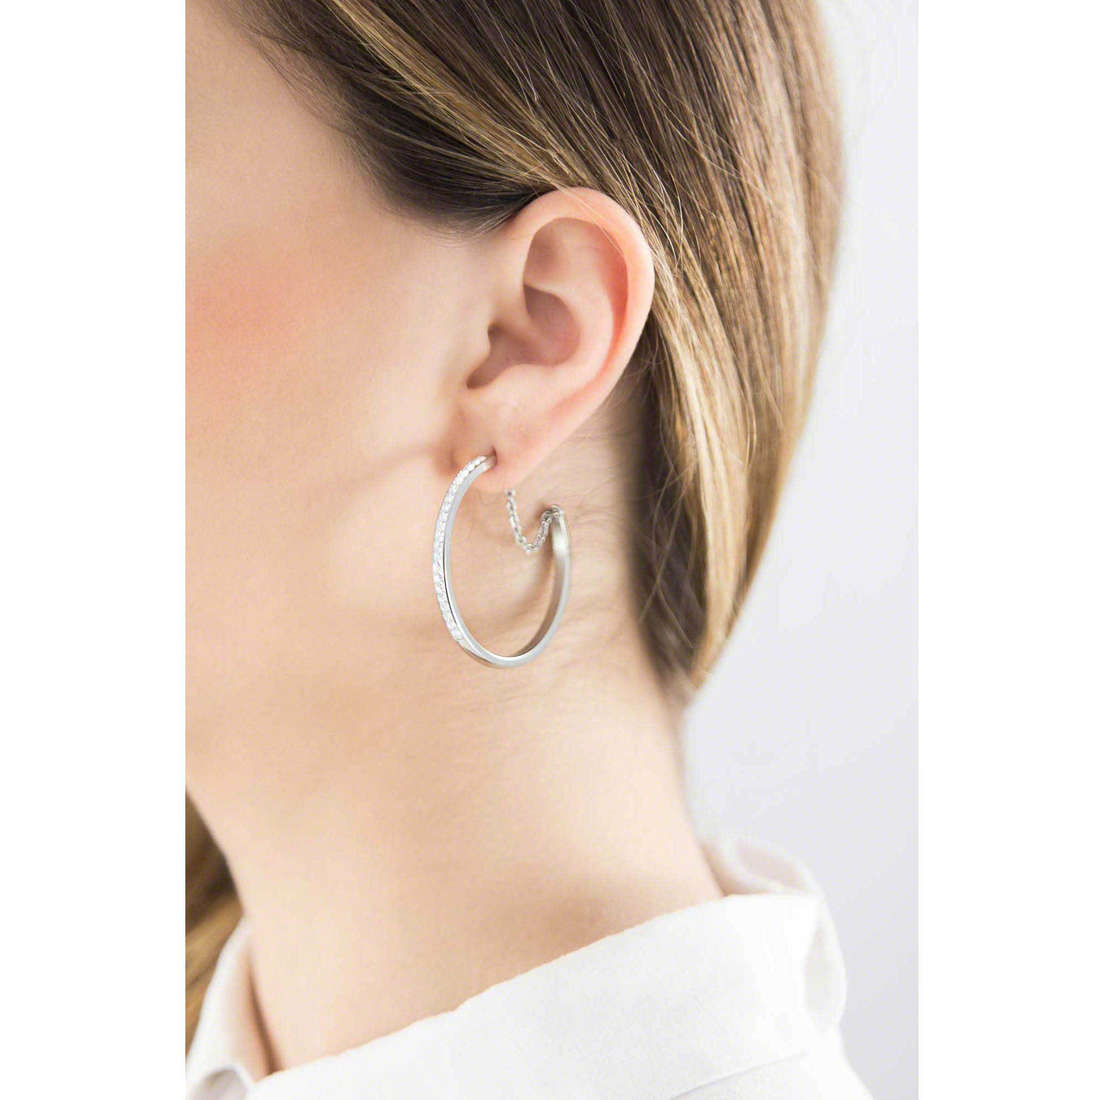 Brosway boucles d'oreille Btring femme BER25 indosso